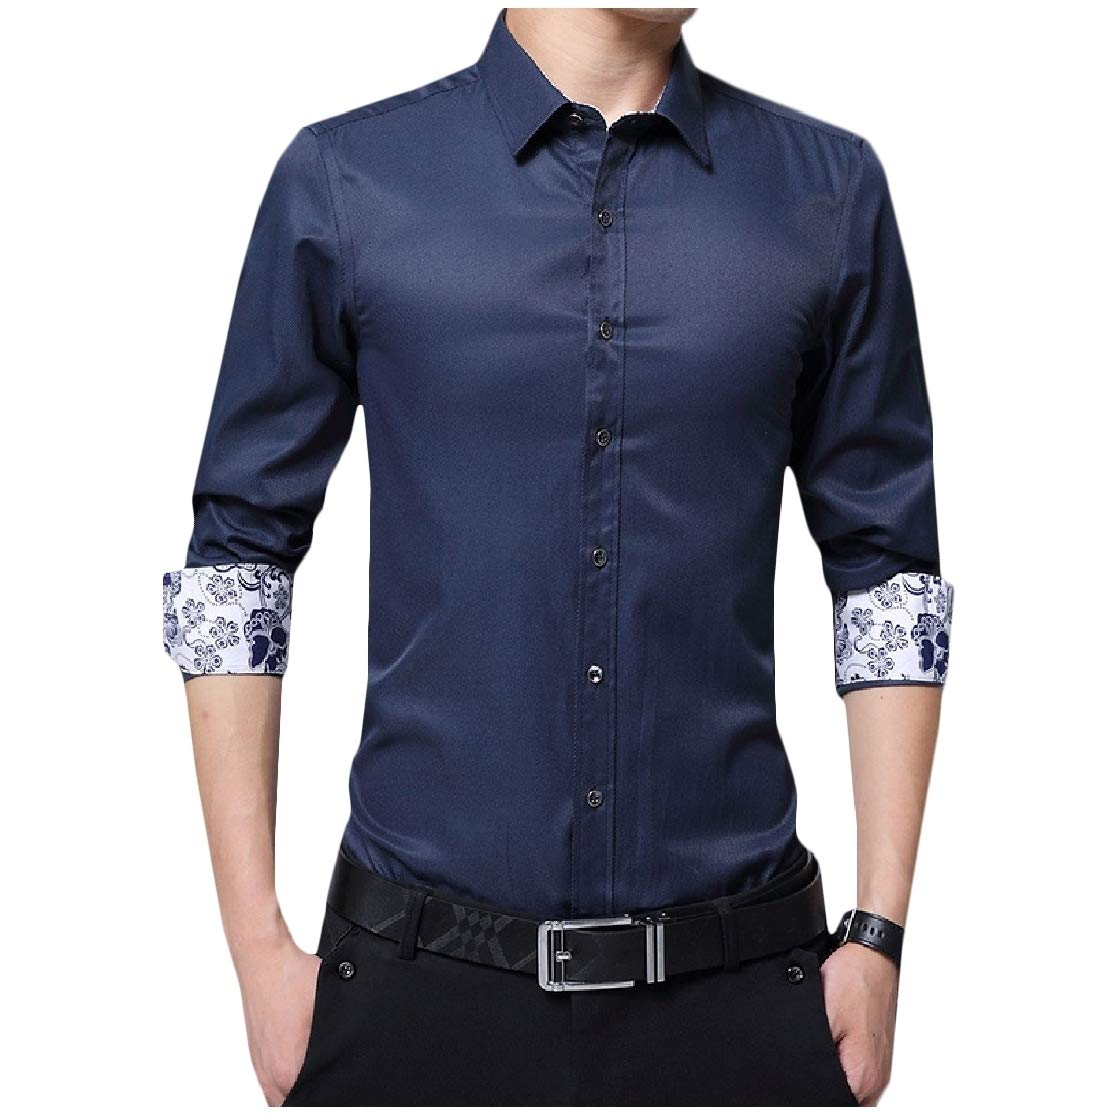 WSPLYSPJY Mens Hipster Printed Casual Slim fit Long Sleeve Casual Button Down Shirt